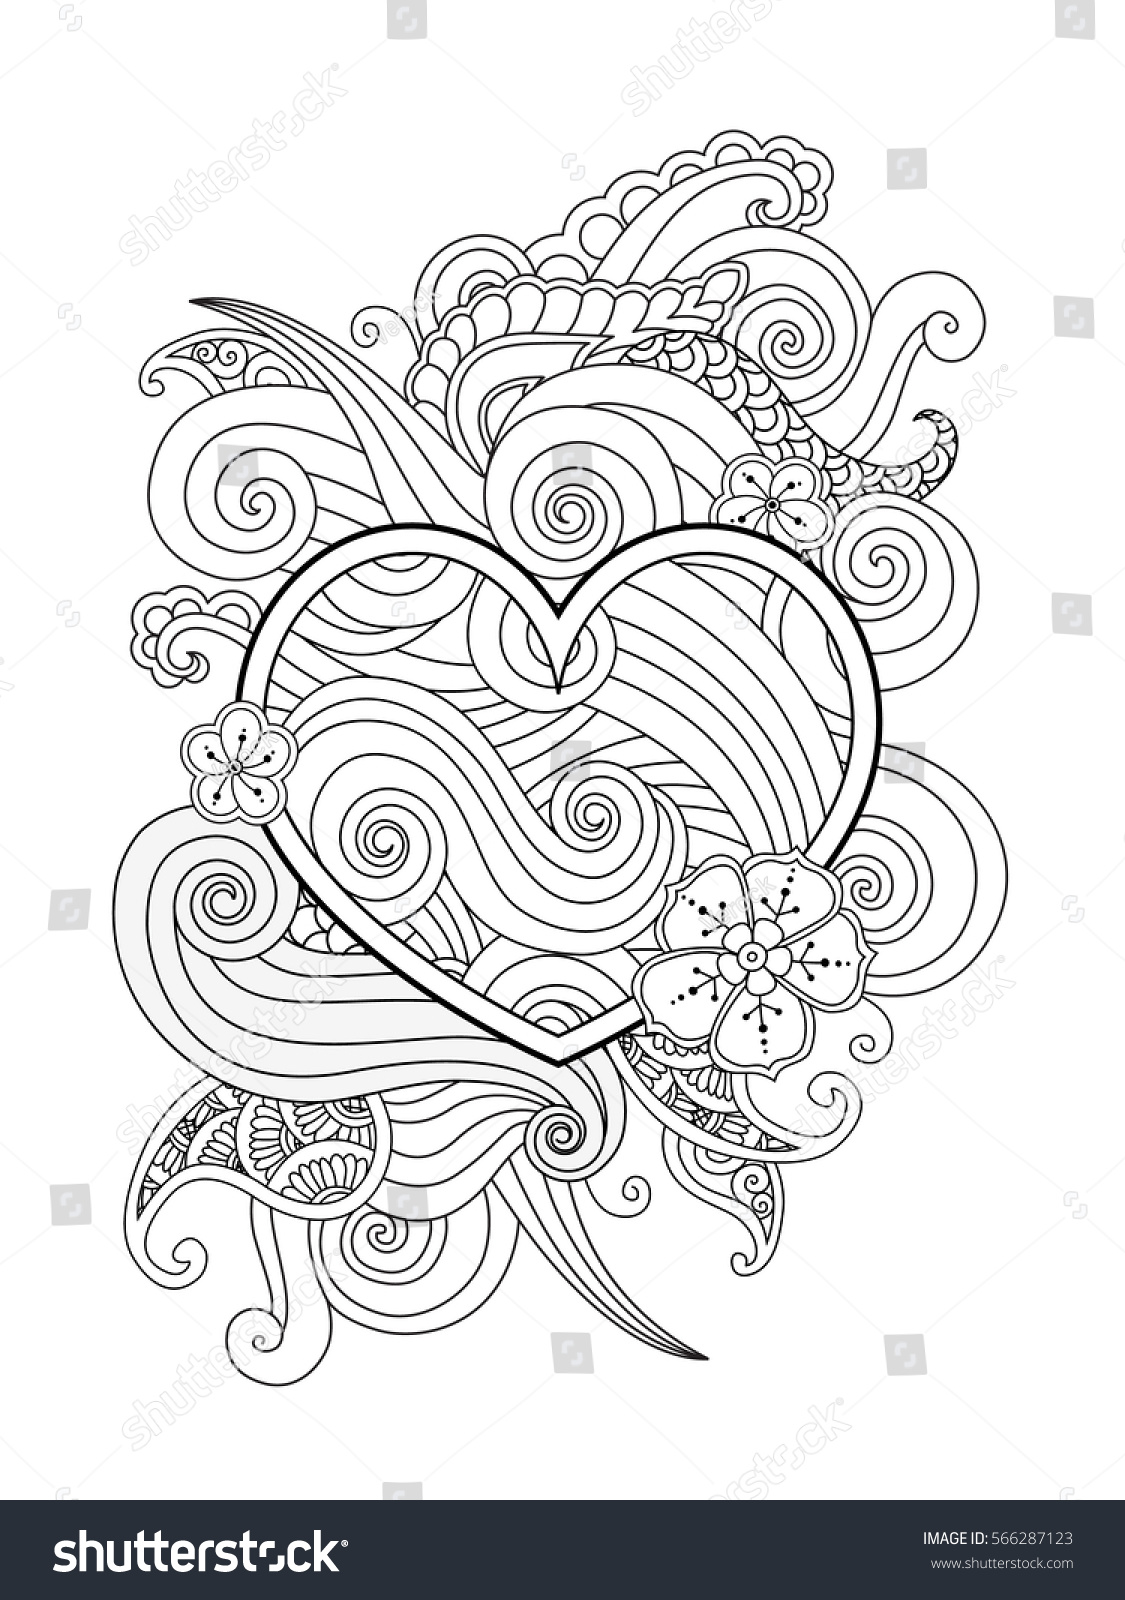 coloring page heart abstract element isolated stock vector